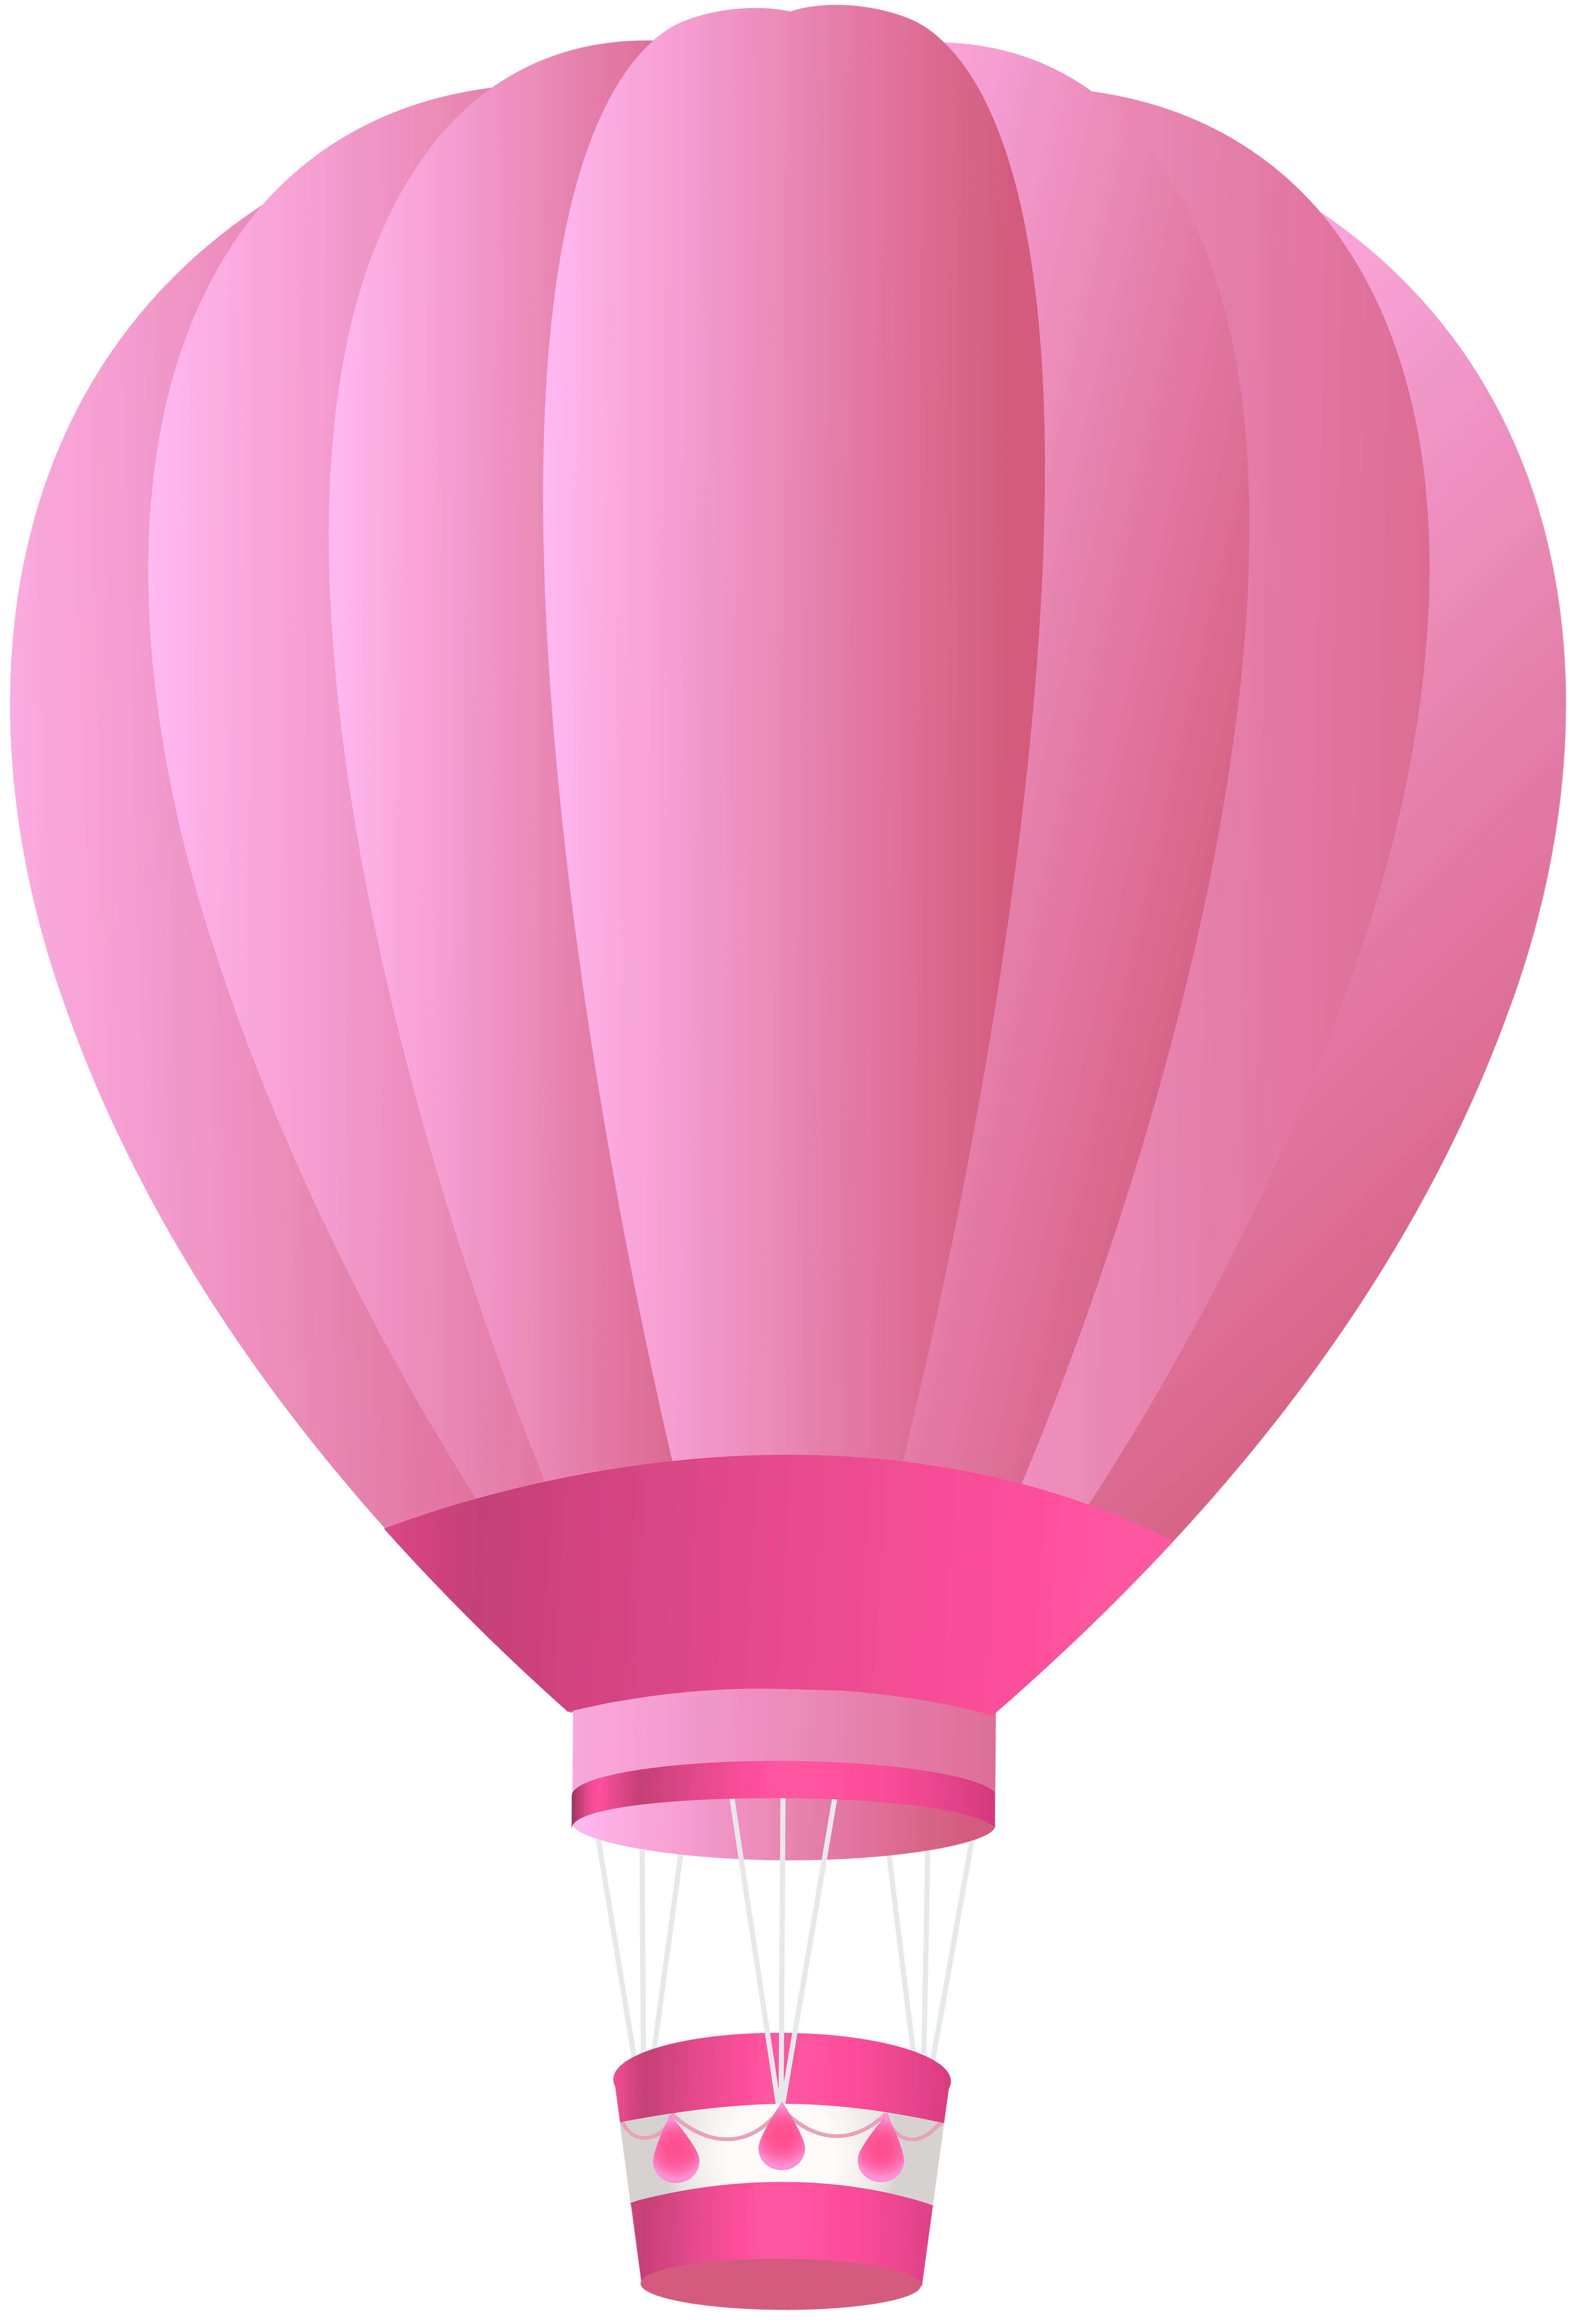 Pink Air Balloon Clip Art Png Image Gallery Yopriceville High Quality Images And Transparent Png Free Clipart Air Balloon Hot Air Balloon Clipart Balloons